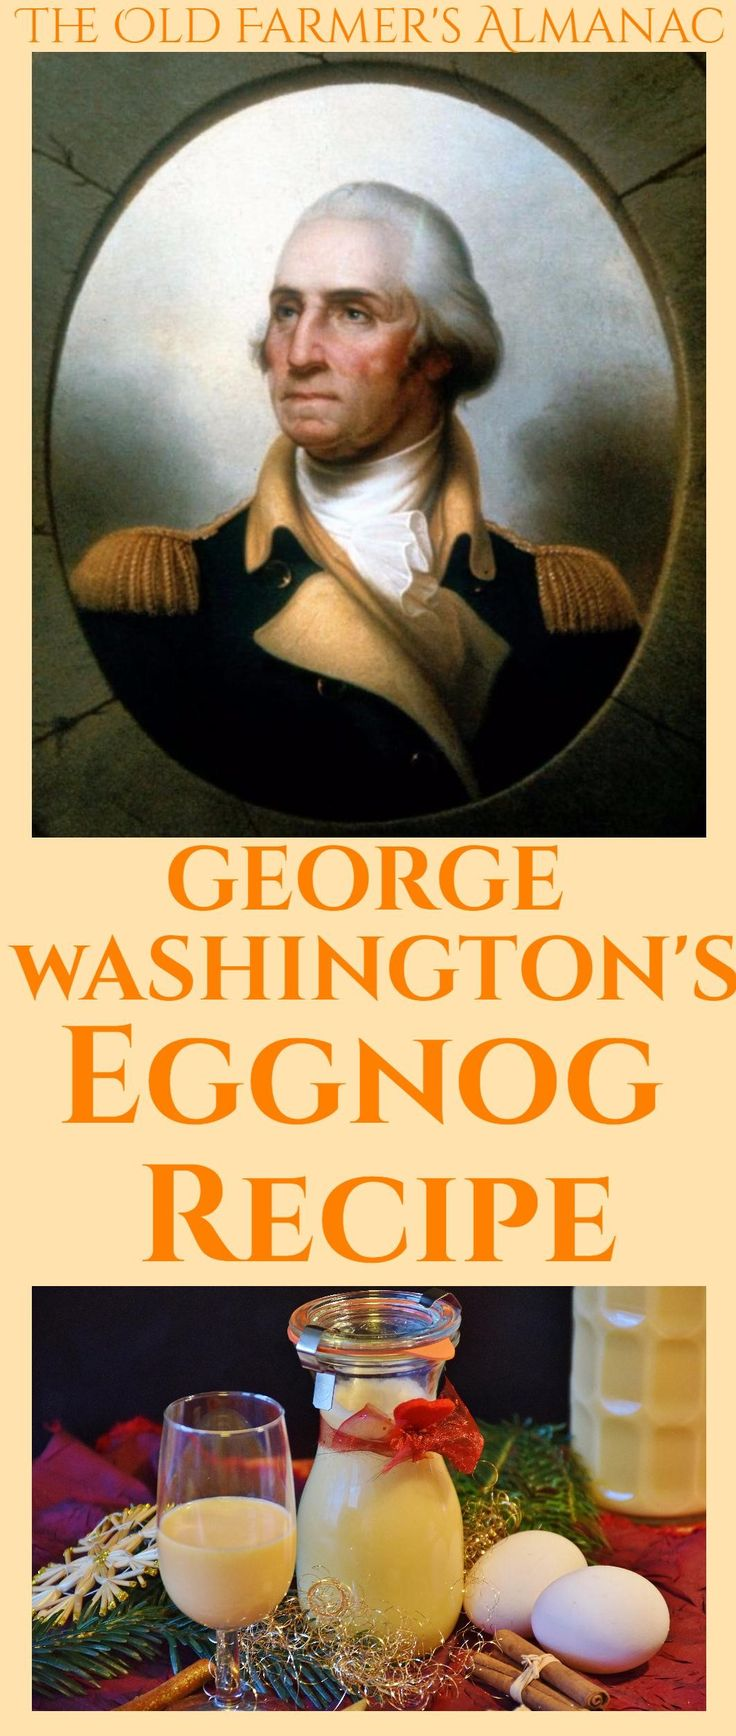 Drink the eggnog concocted by our first President! George Washington's Eggnog Recipe on Almanac.com!